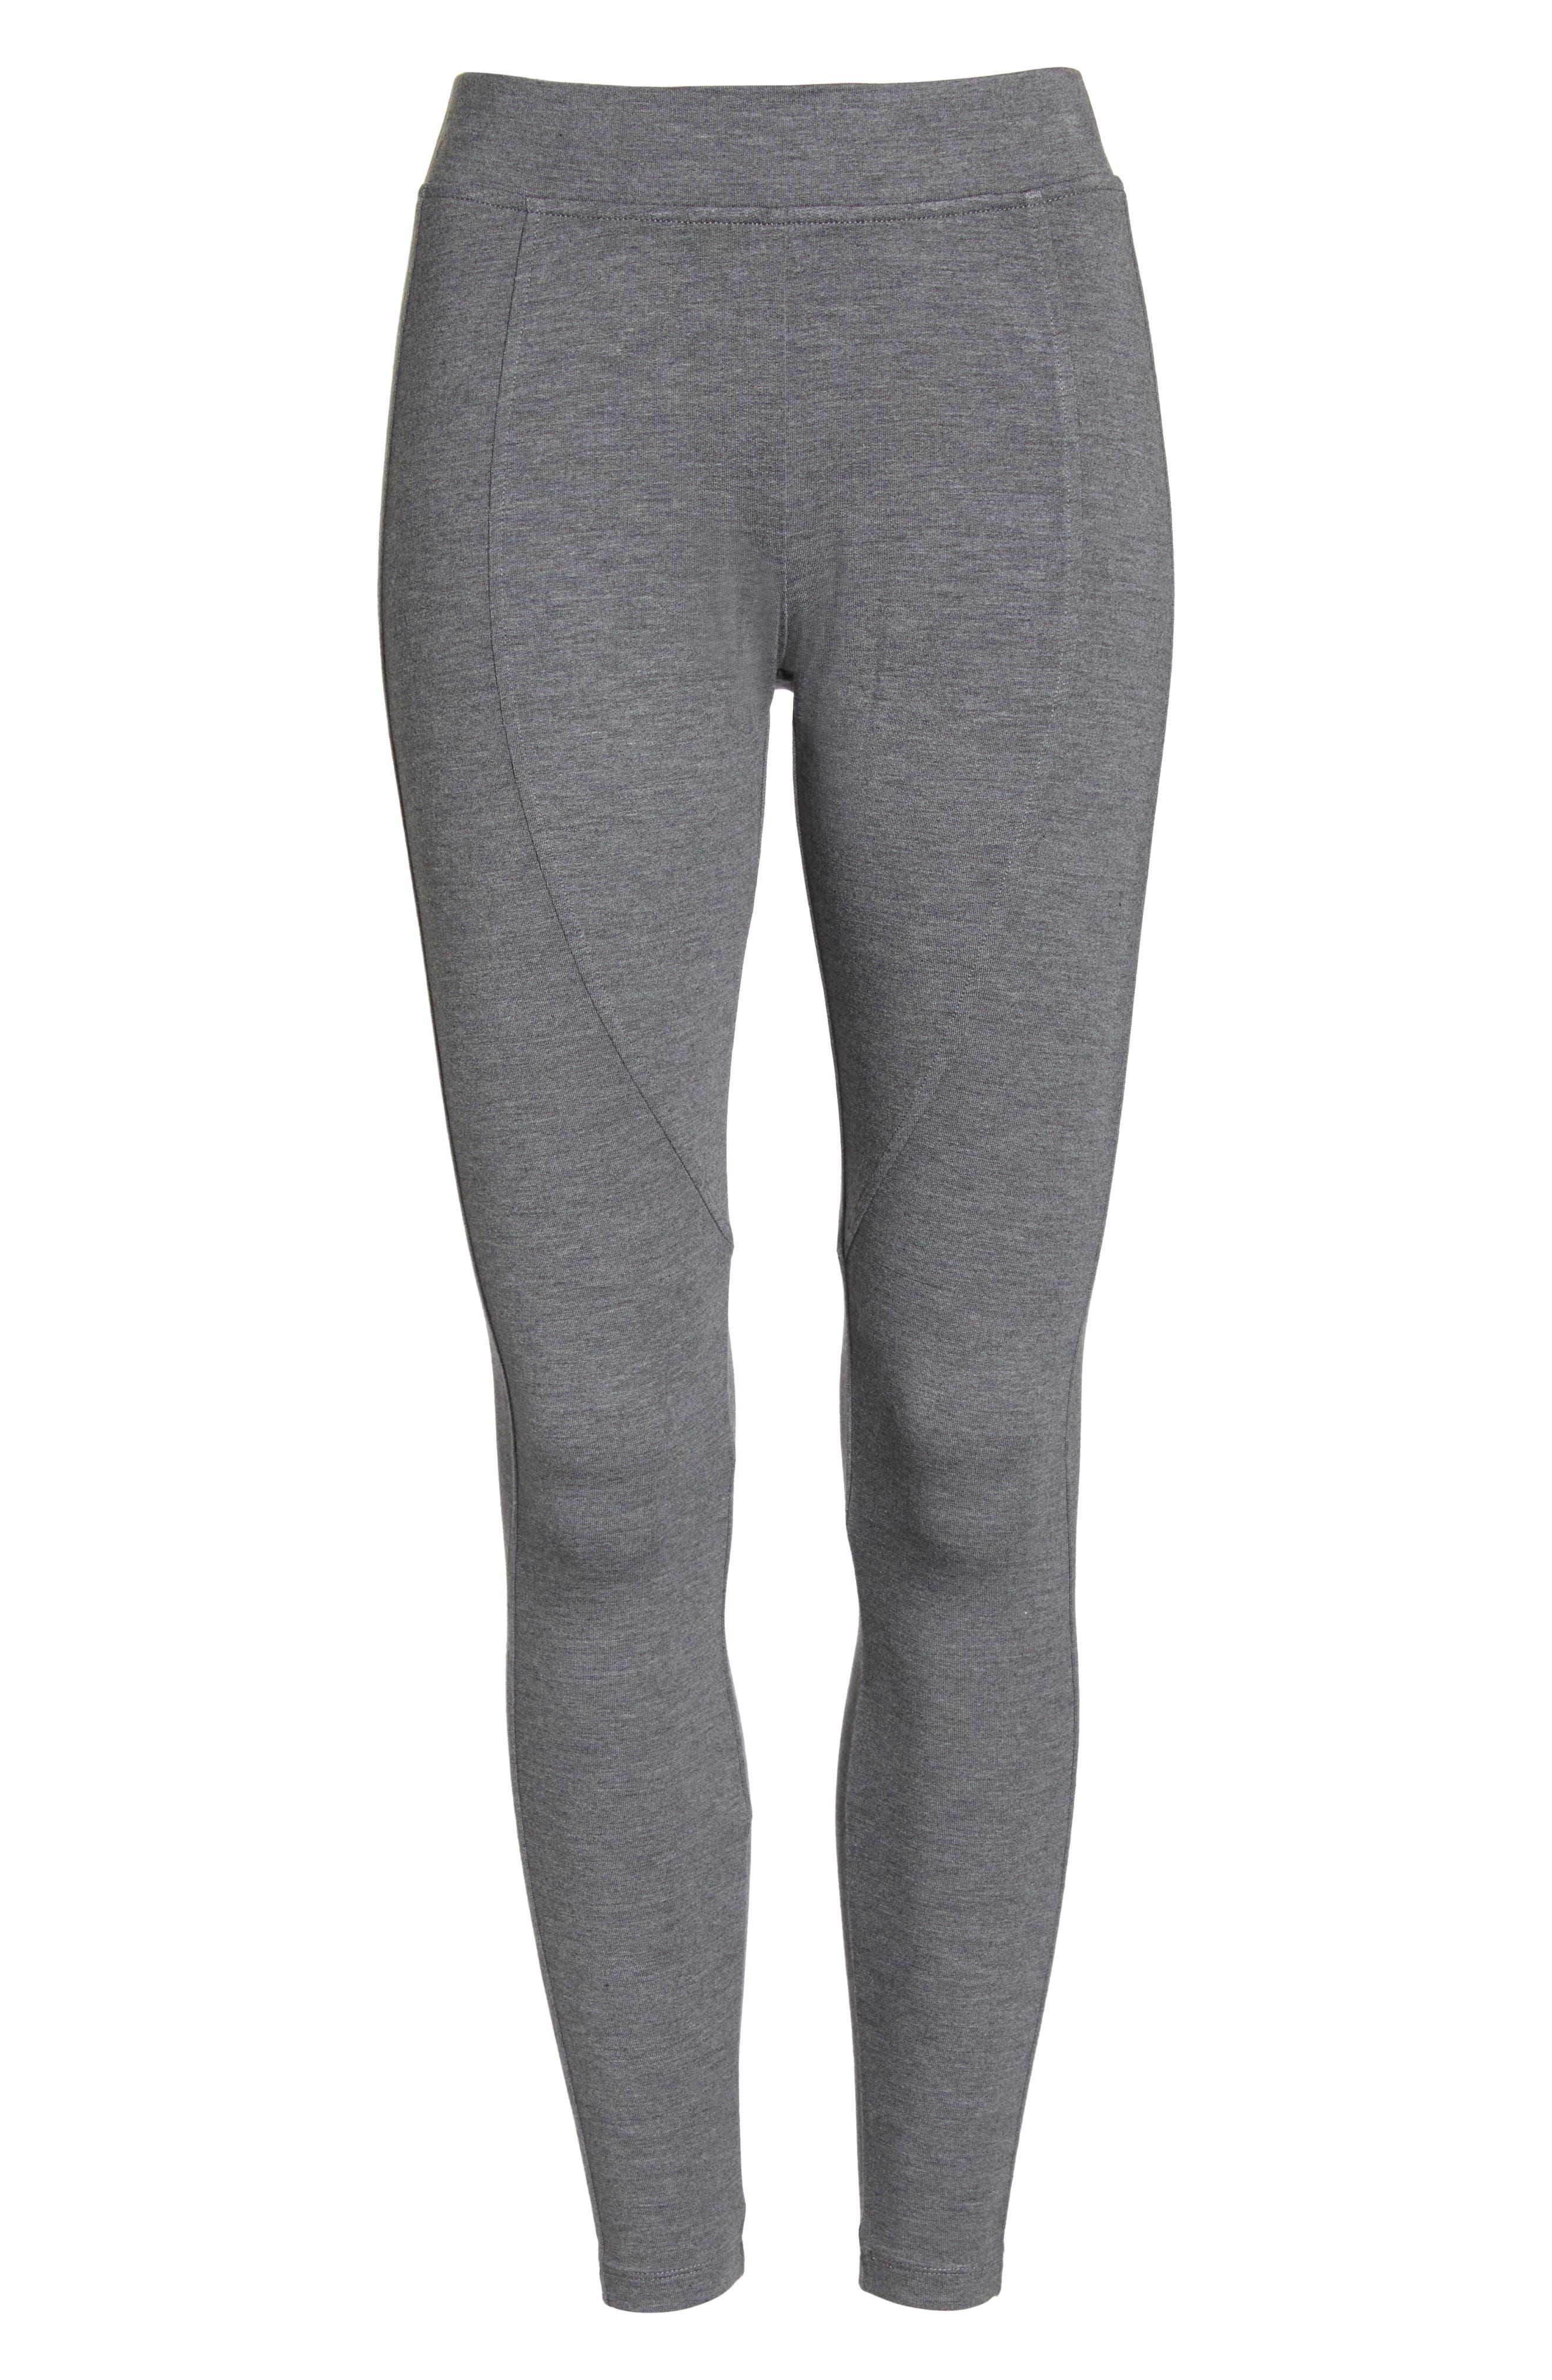 'Watts' Terry Leggings,                             Alternate thumbnail 6, color,                             CHARCOAL HEATHER